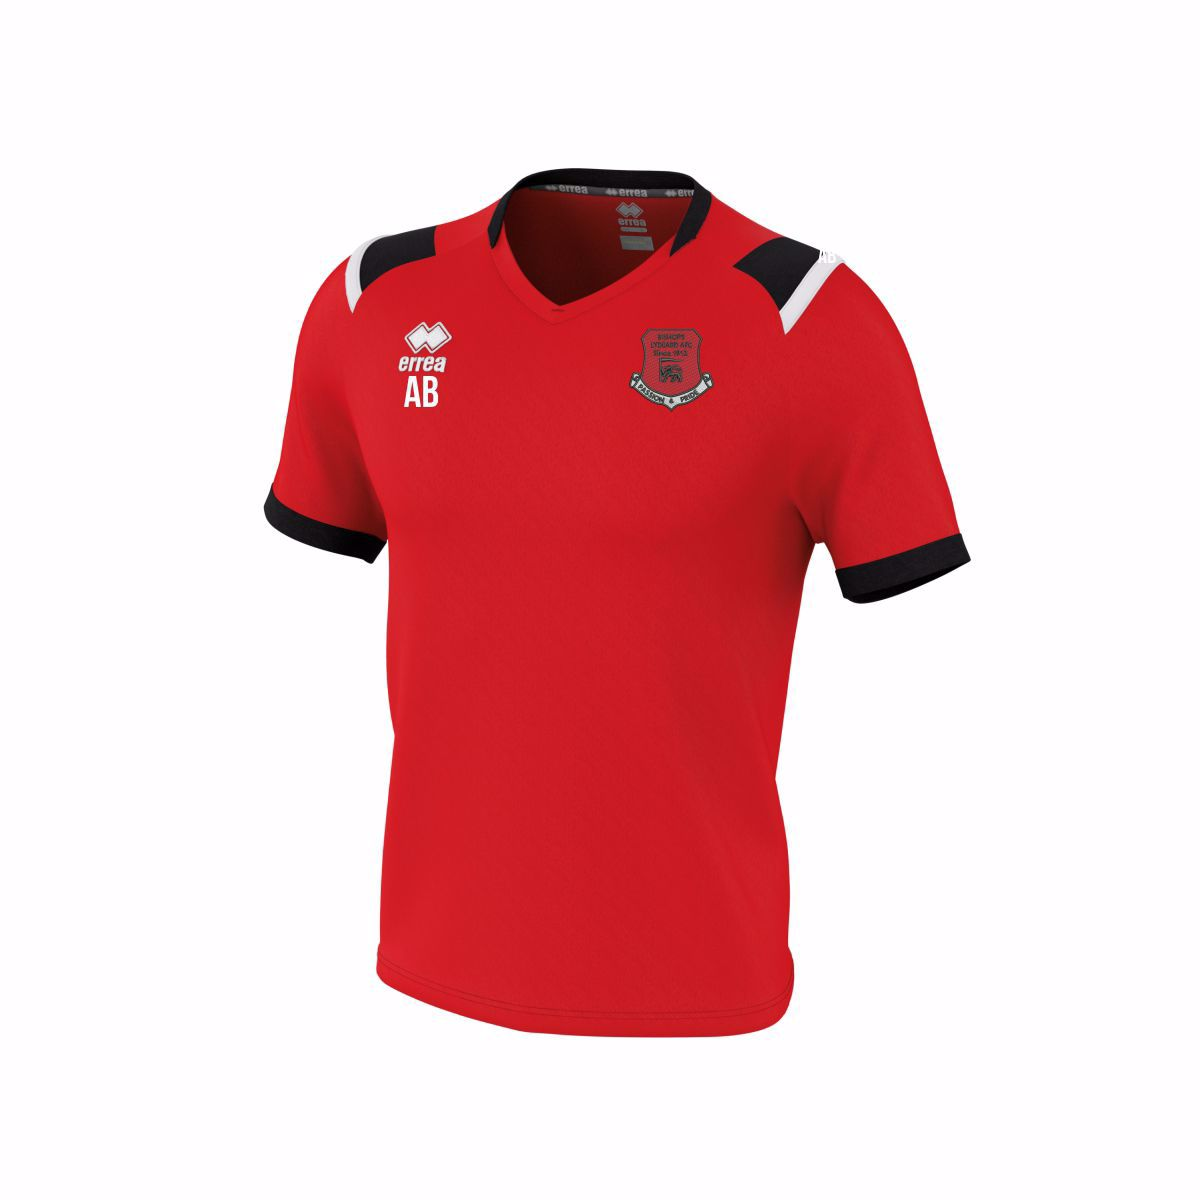 BISHOPS LYDEARDS FC Lucas Red T Shirt - Adult